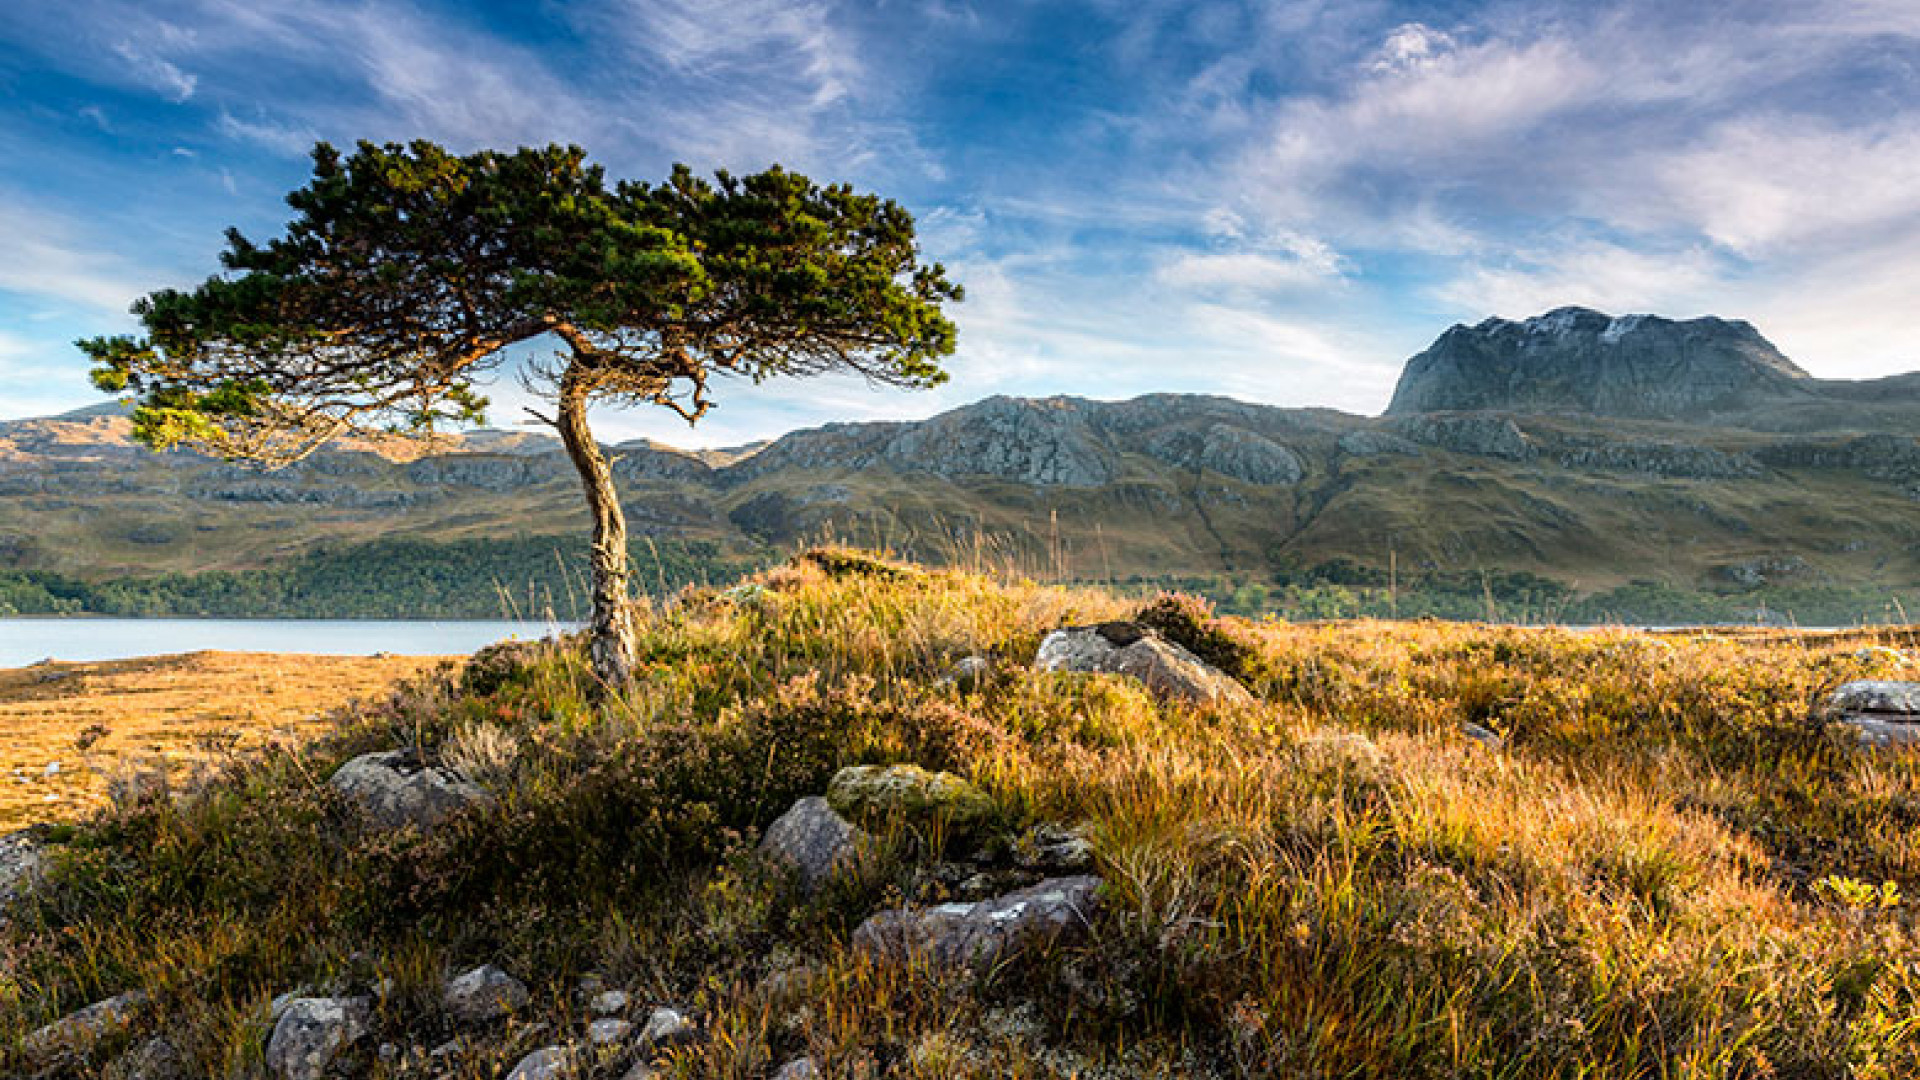 Towards-Slioch-at-Dawn,-from-Loch-Maree,-Wester-Ross,-Scotland-by-Jim-Robertson-(Take-a-view,-2013)-